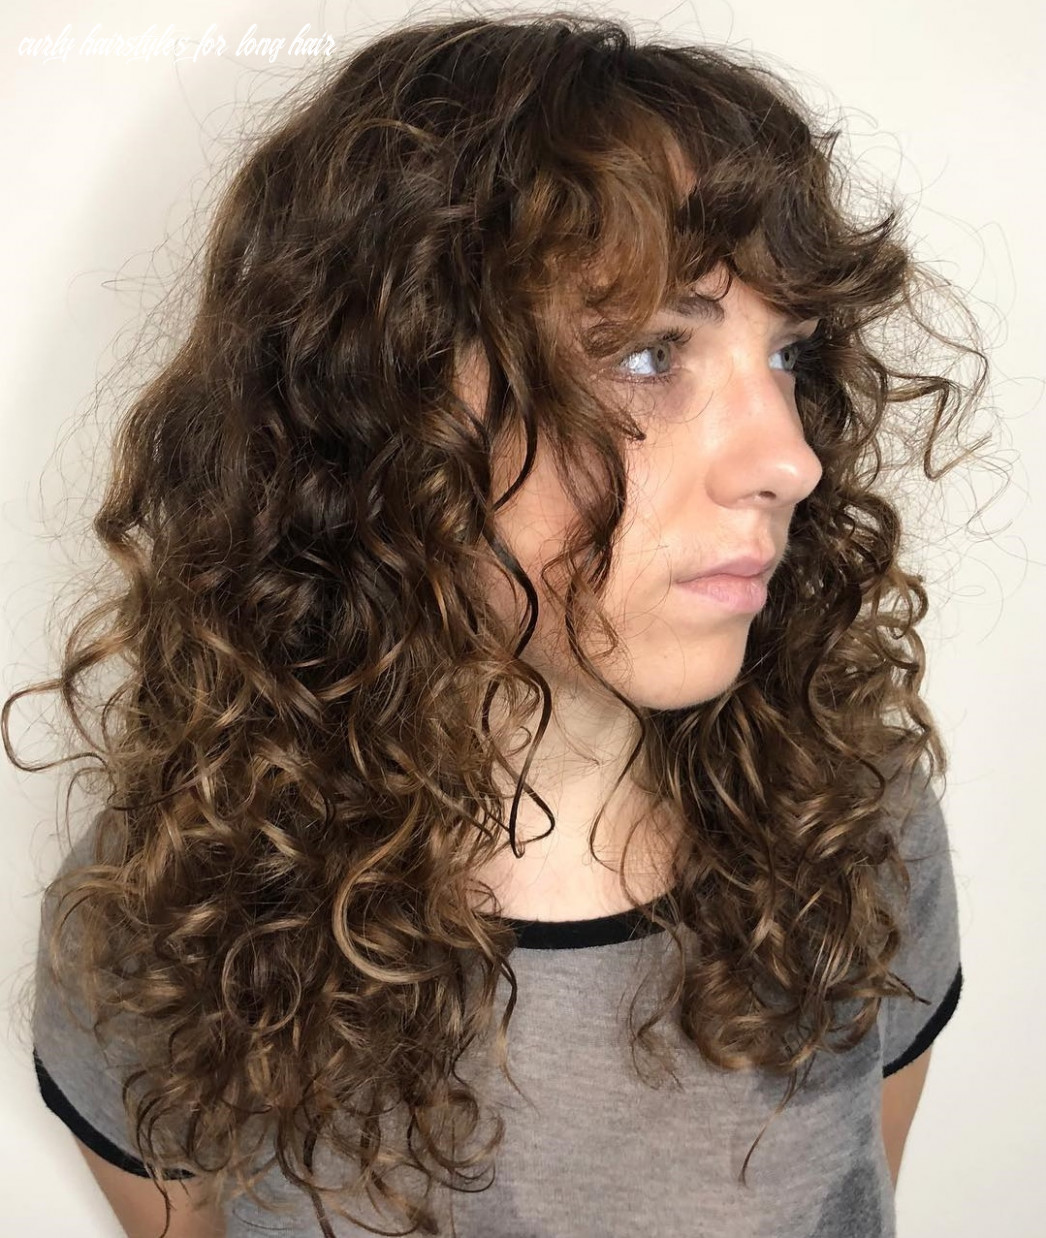 9 Natural Curly Hairstyles to Try in 9 - Hair Adviser